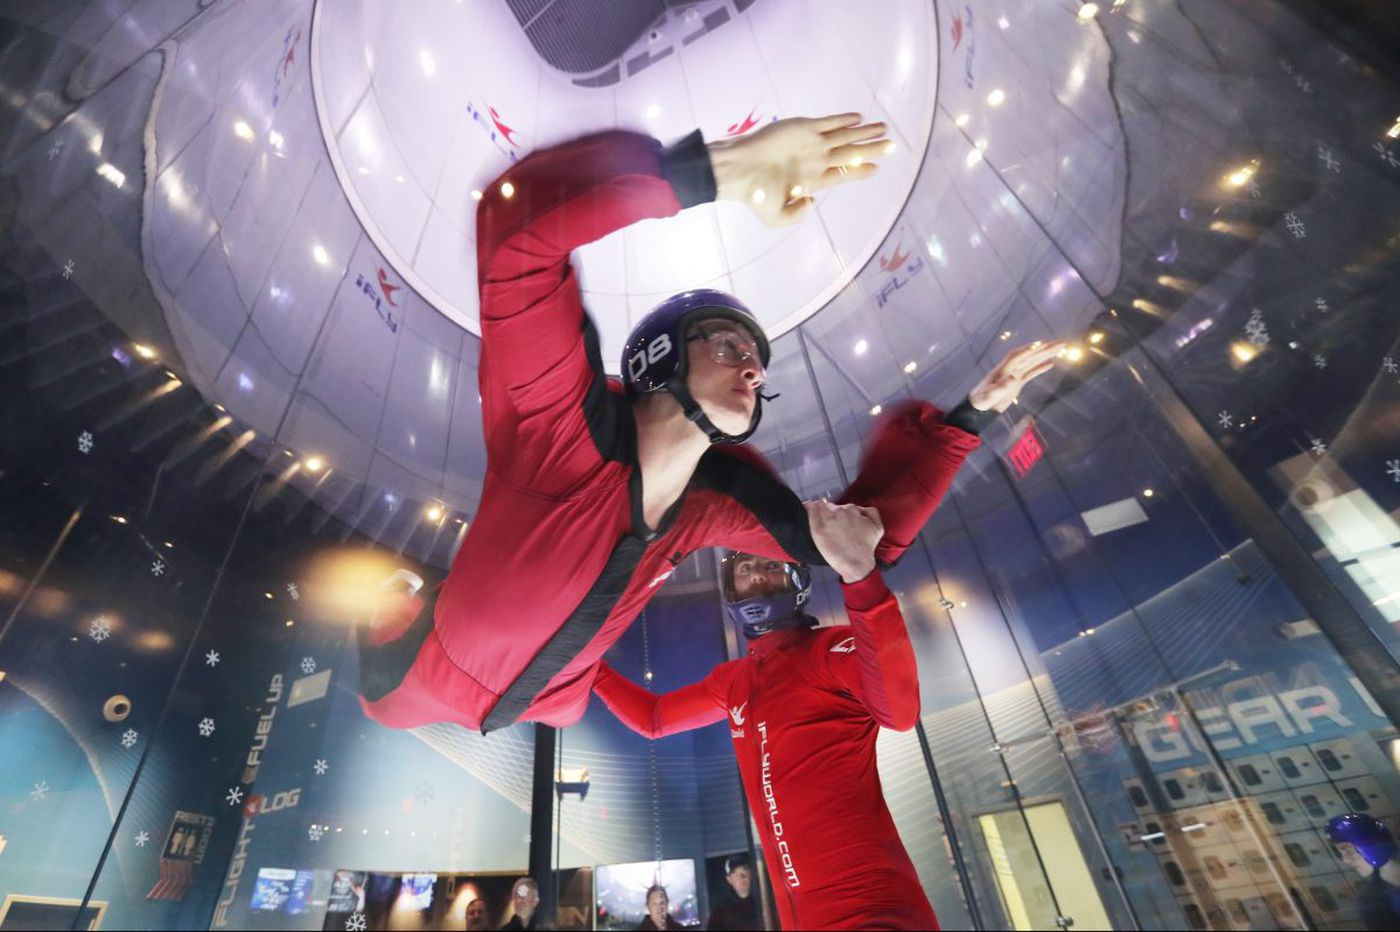 Coping with the cold Philly-style: Skydiving, surfing, a Penn basketball game